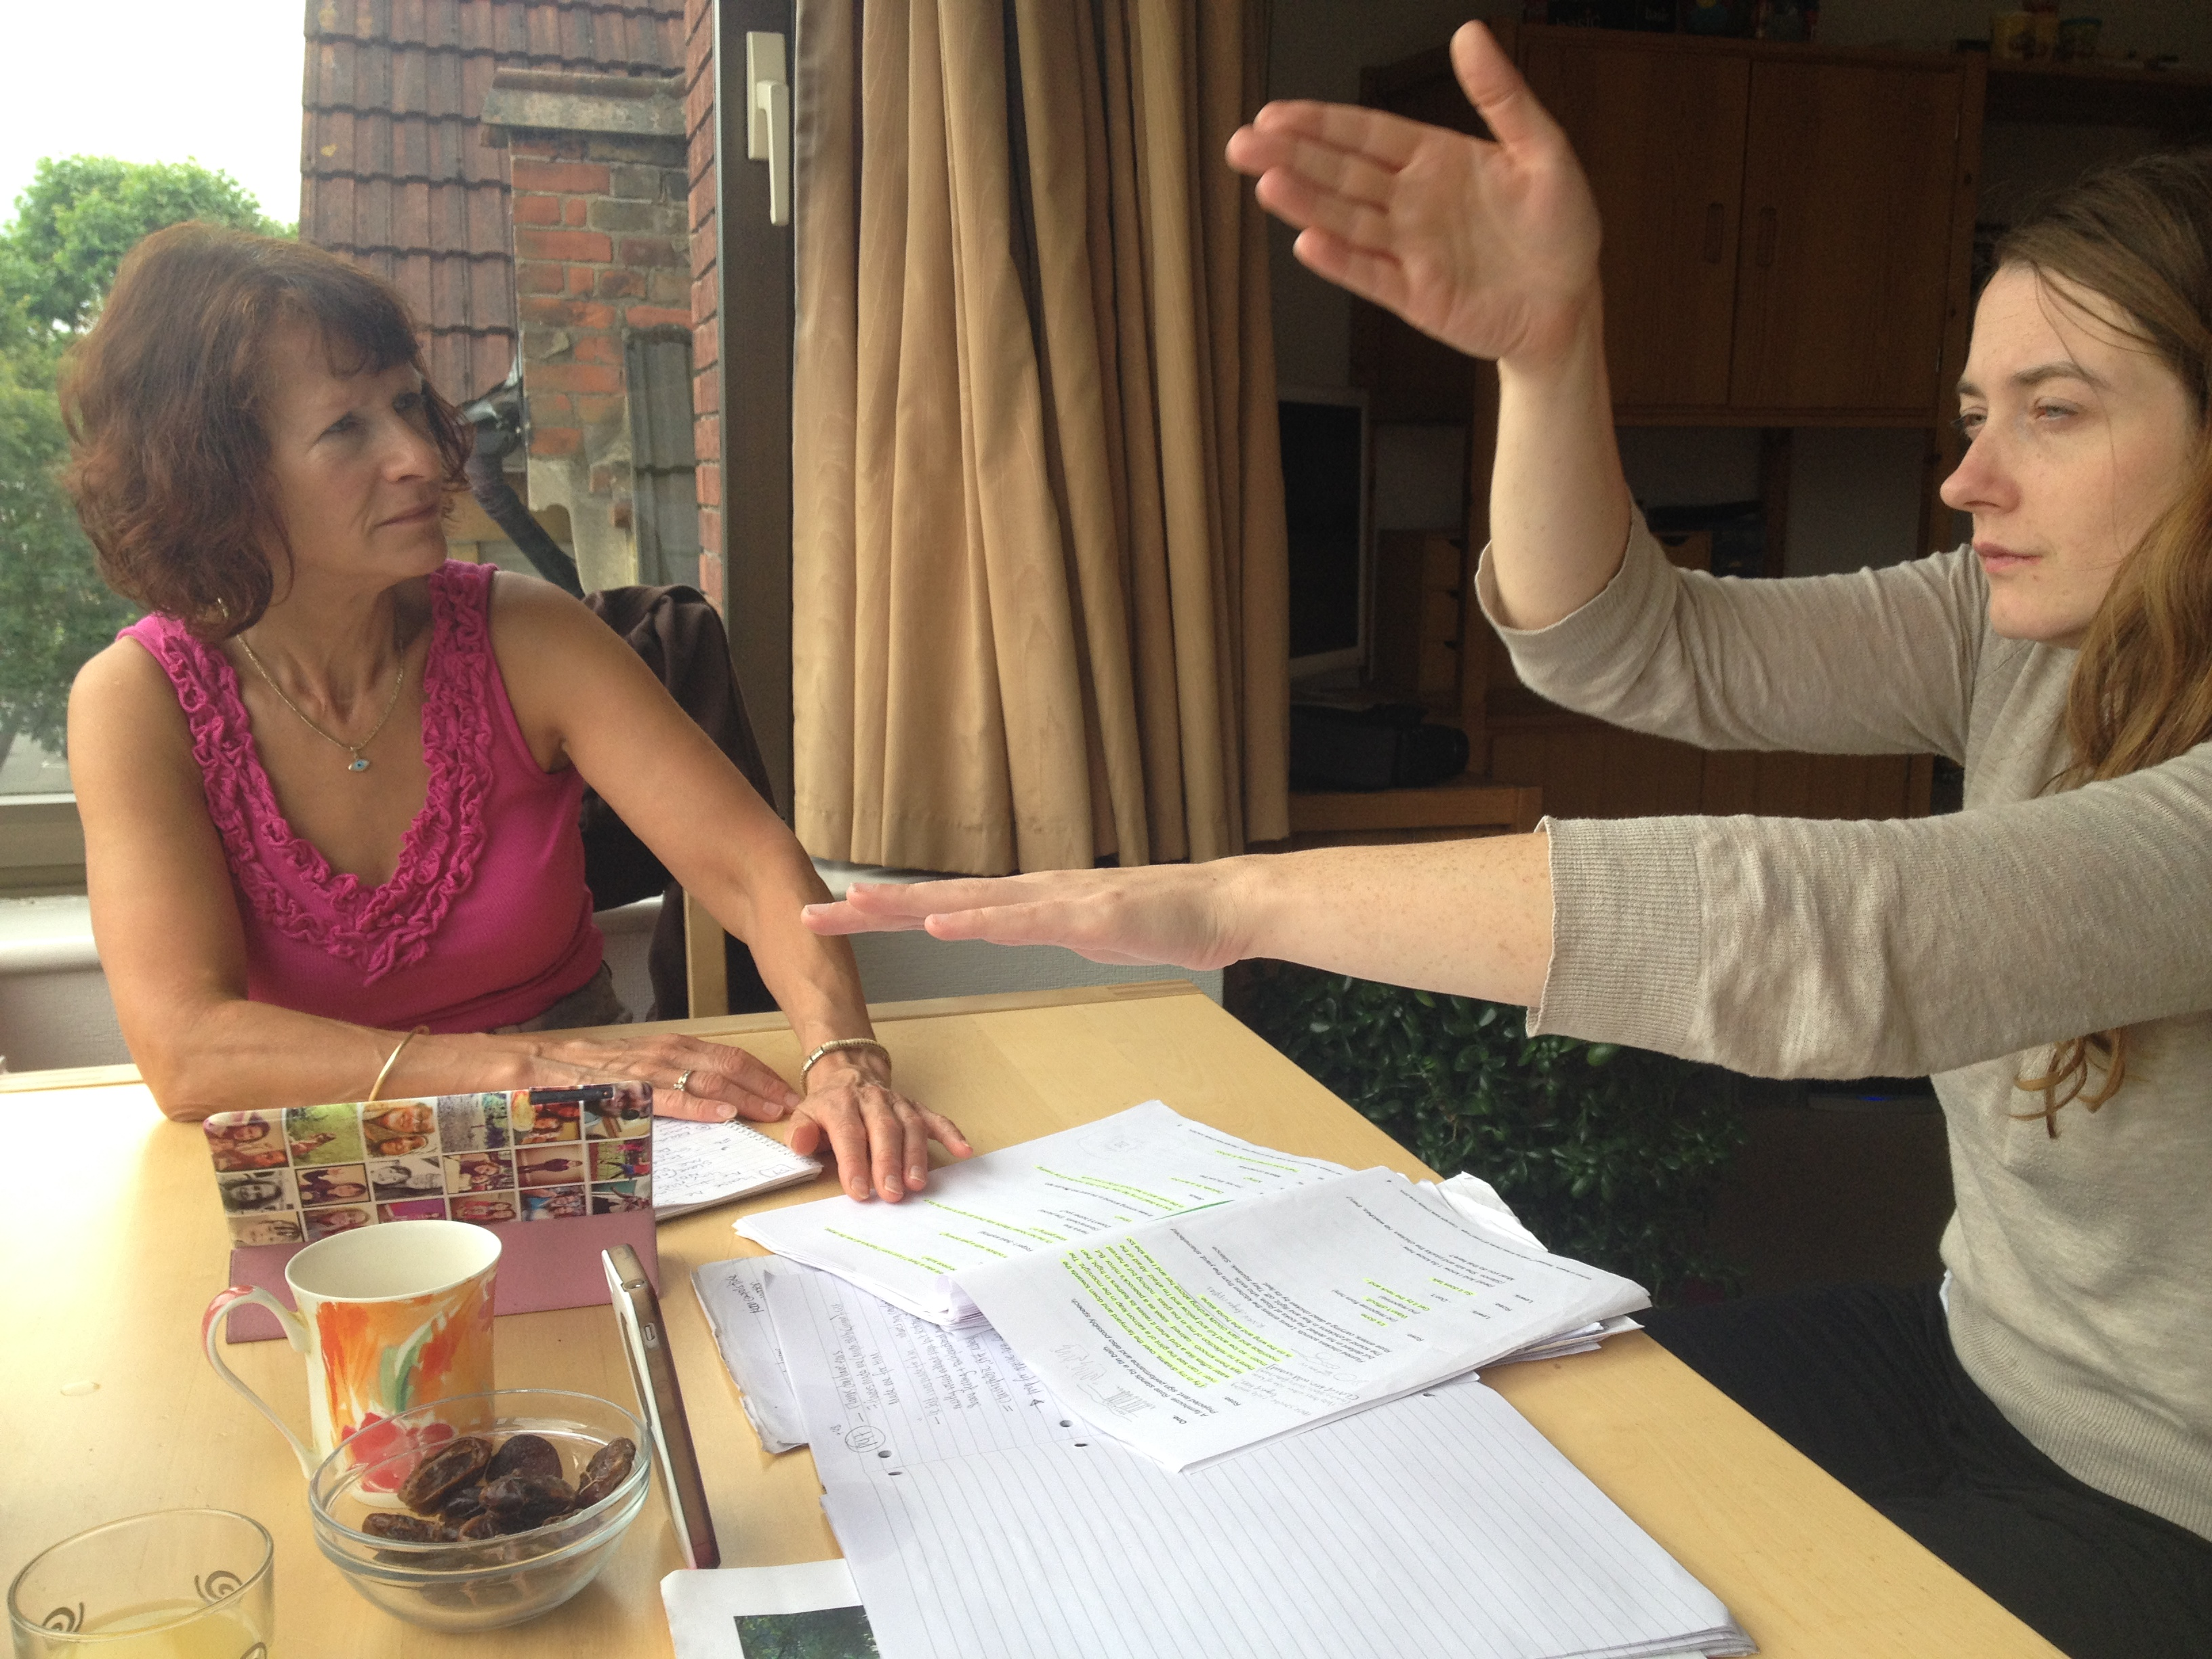 Two women face each other across a table with a script on it, devising sign language interpretation